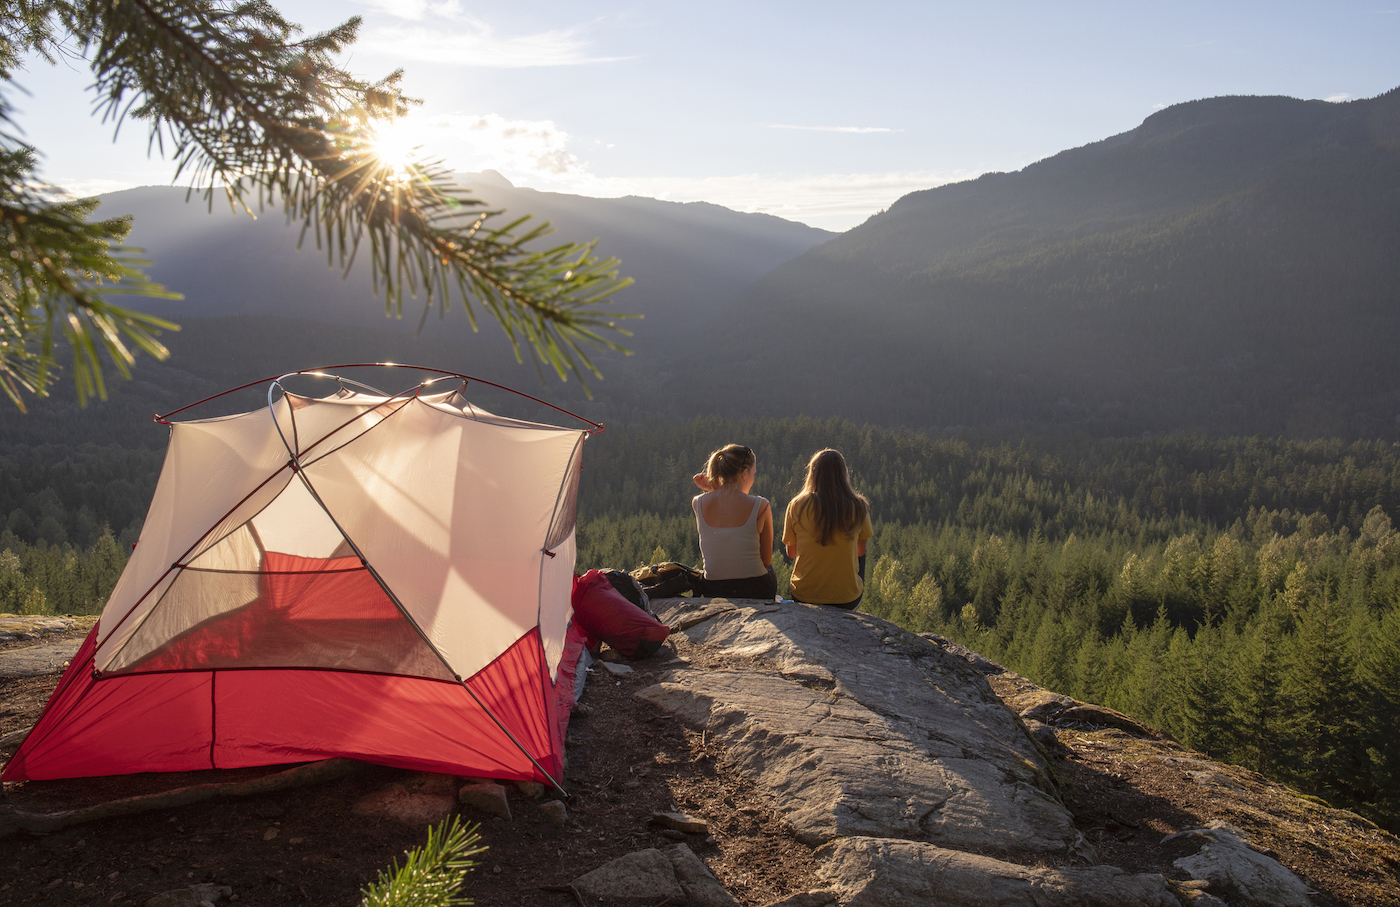 9 Best Camping Essentials, According To A Forest Ranger 2021 | Well+Good